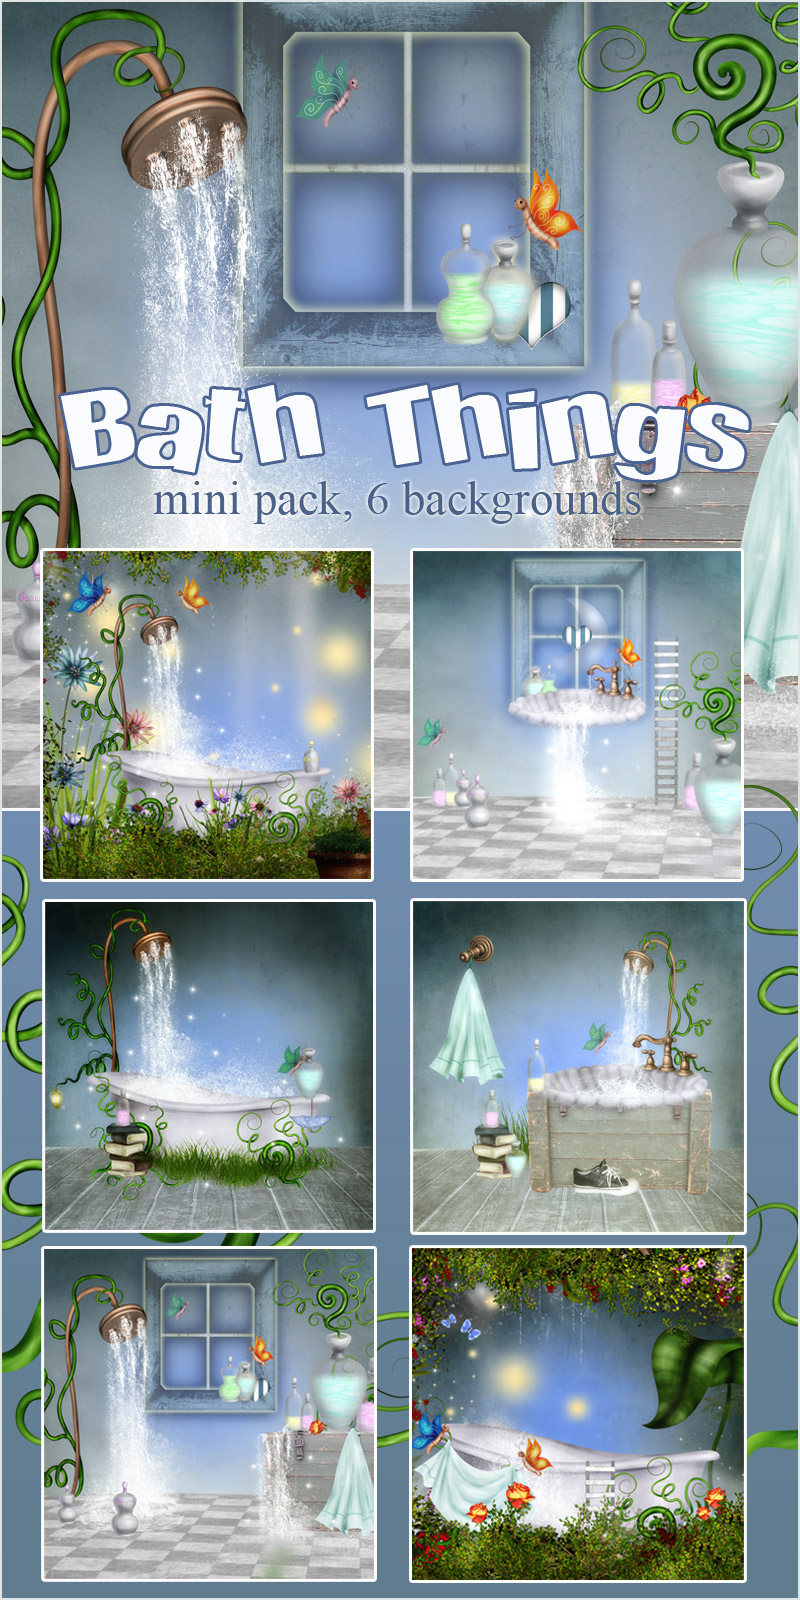 Bath Things